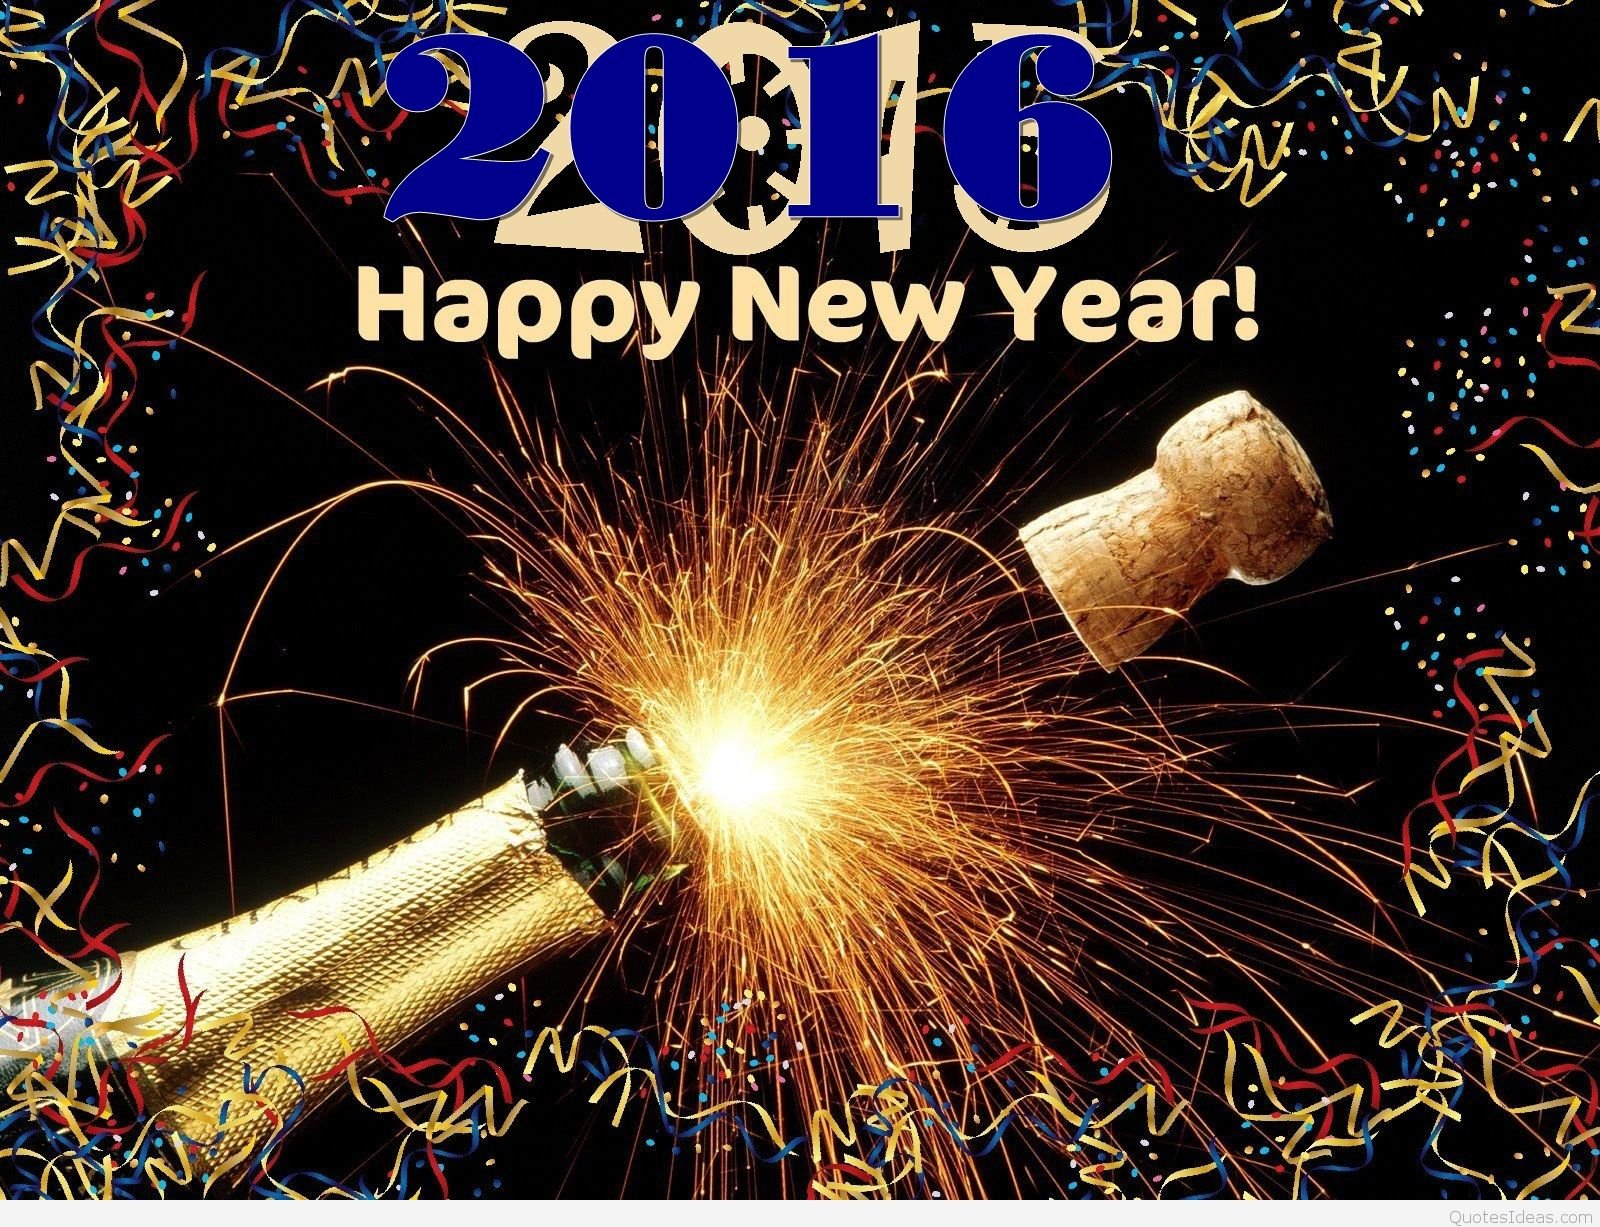 Best Funny Happy New Year Sayings wallpapers Images 2016 1600x1227